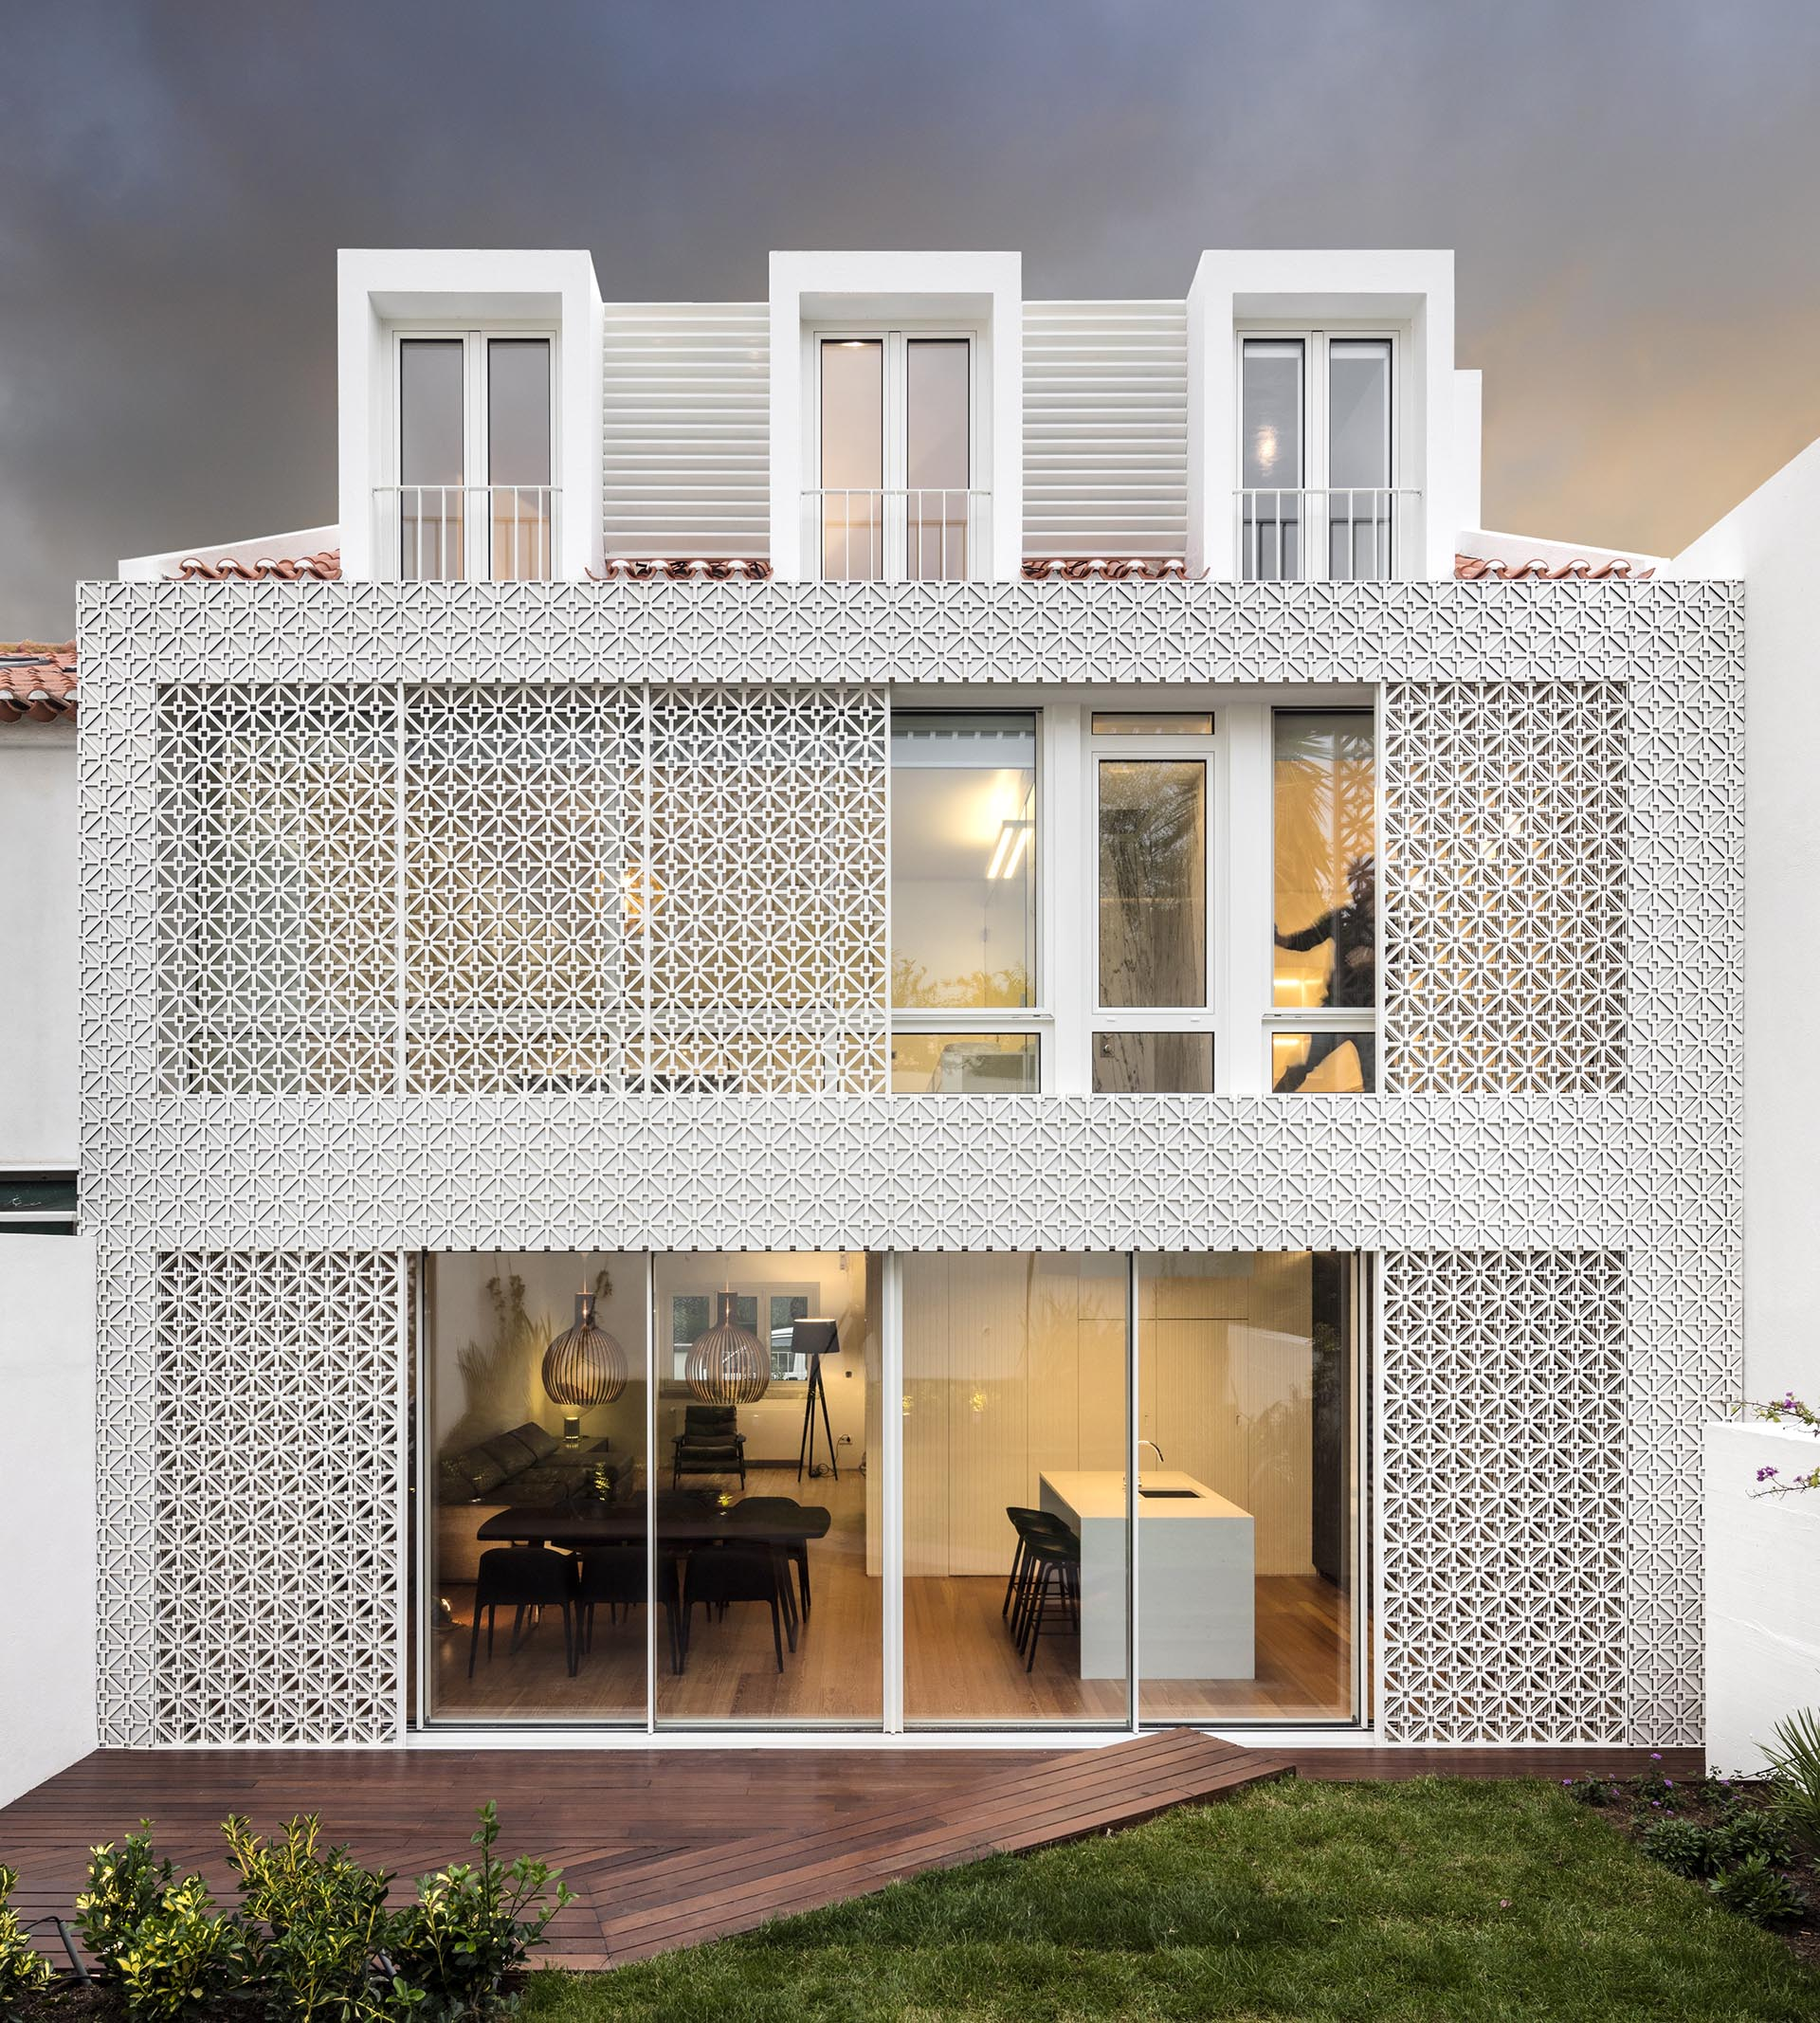 Sliding patterned screens provide shade, security, and a decorative element to this house.